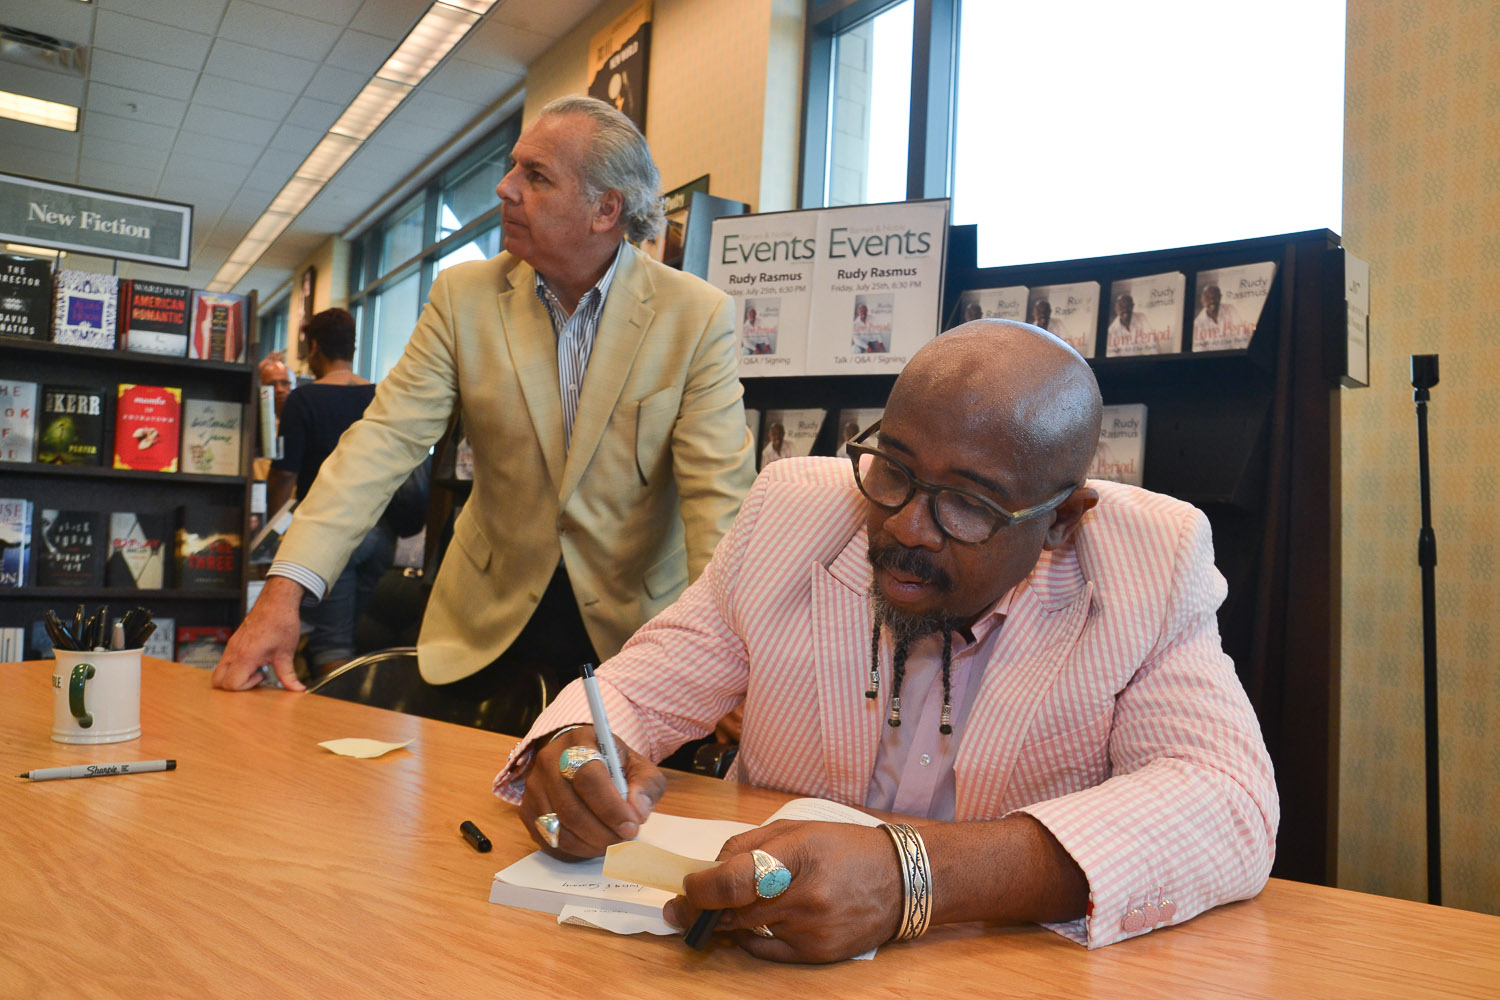 Paster Rudy book signing -0181.jpg